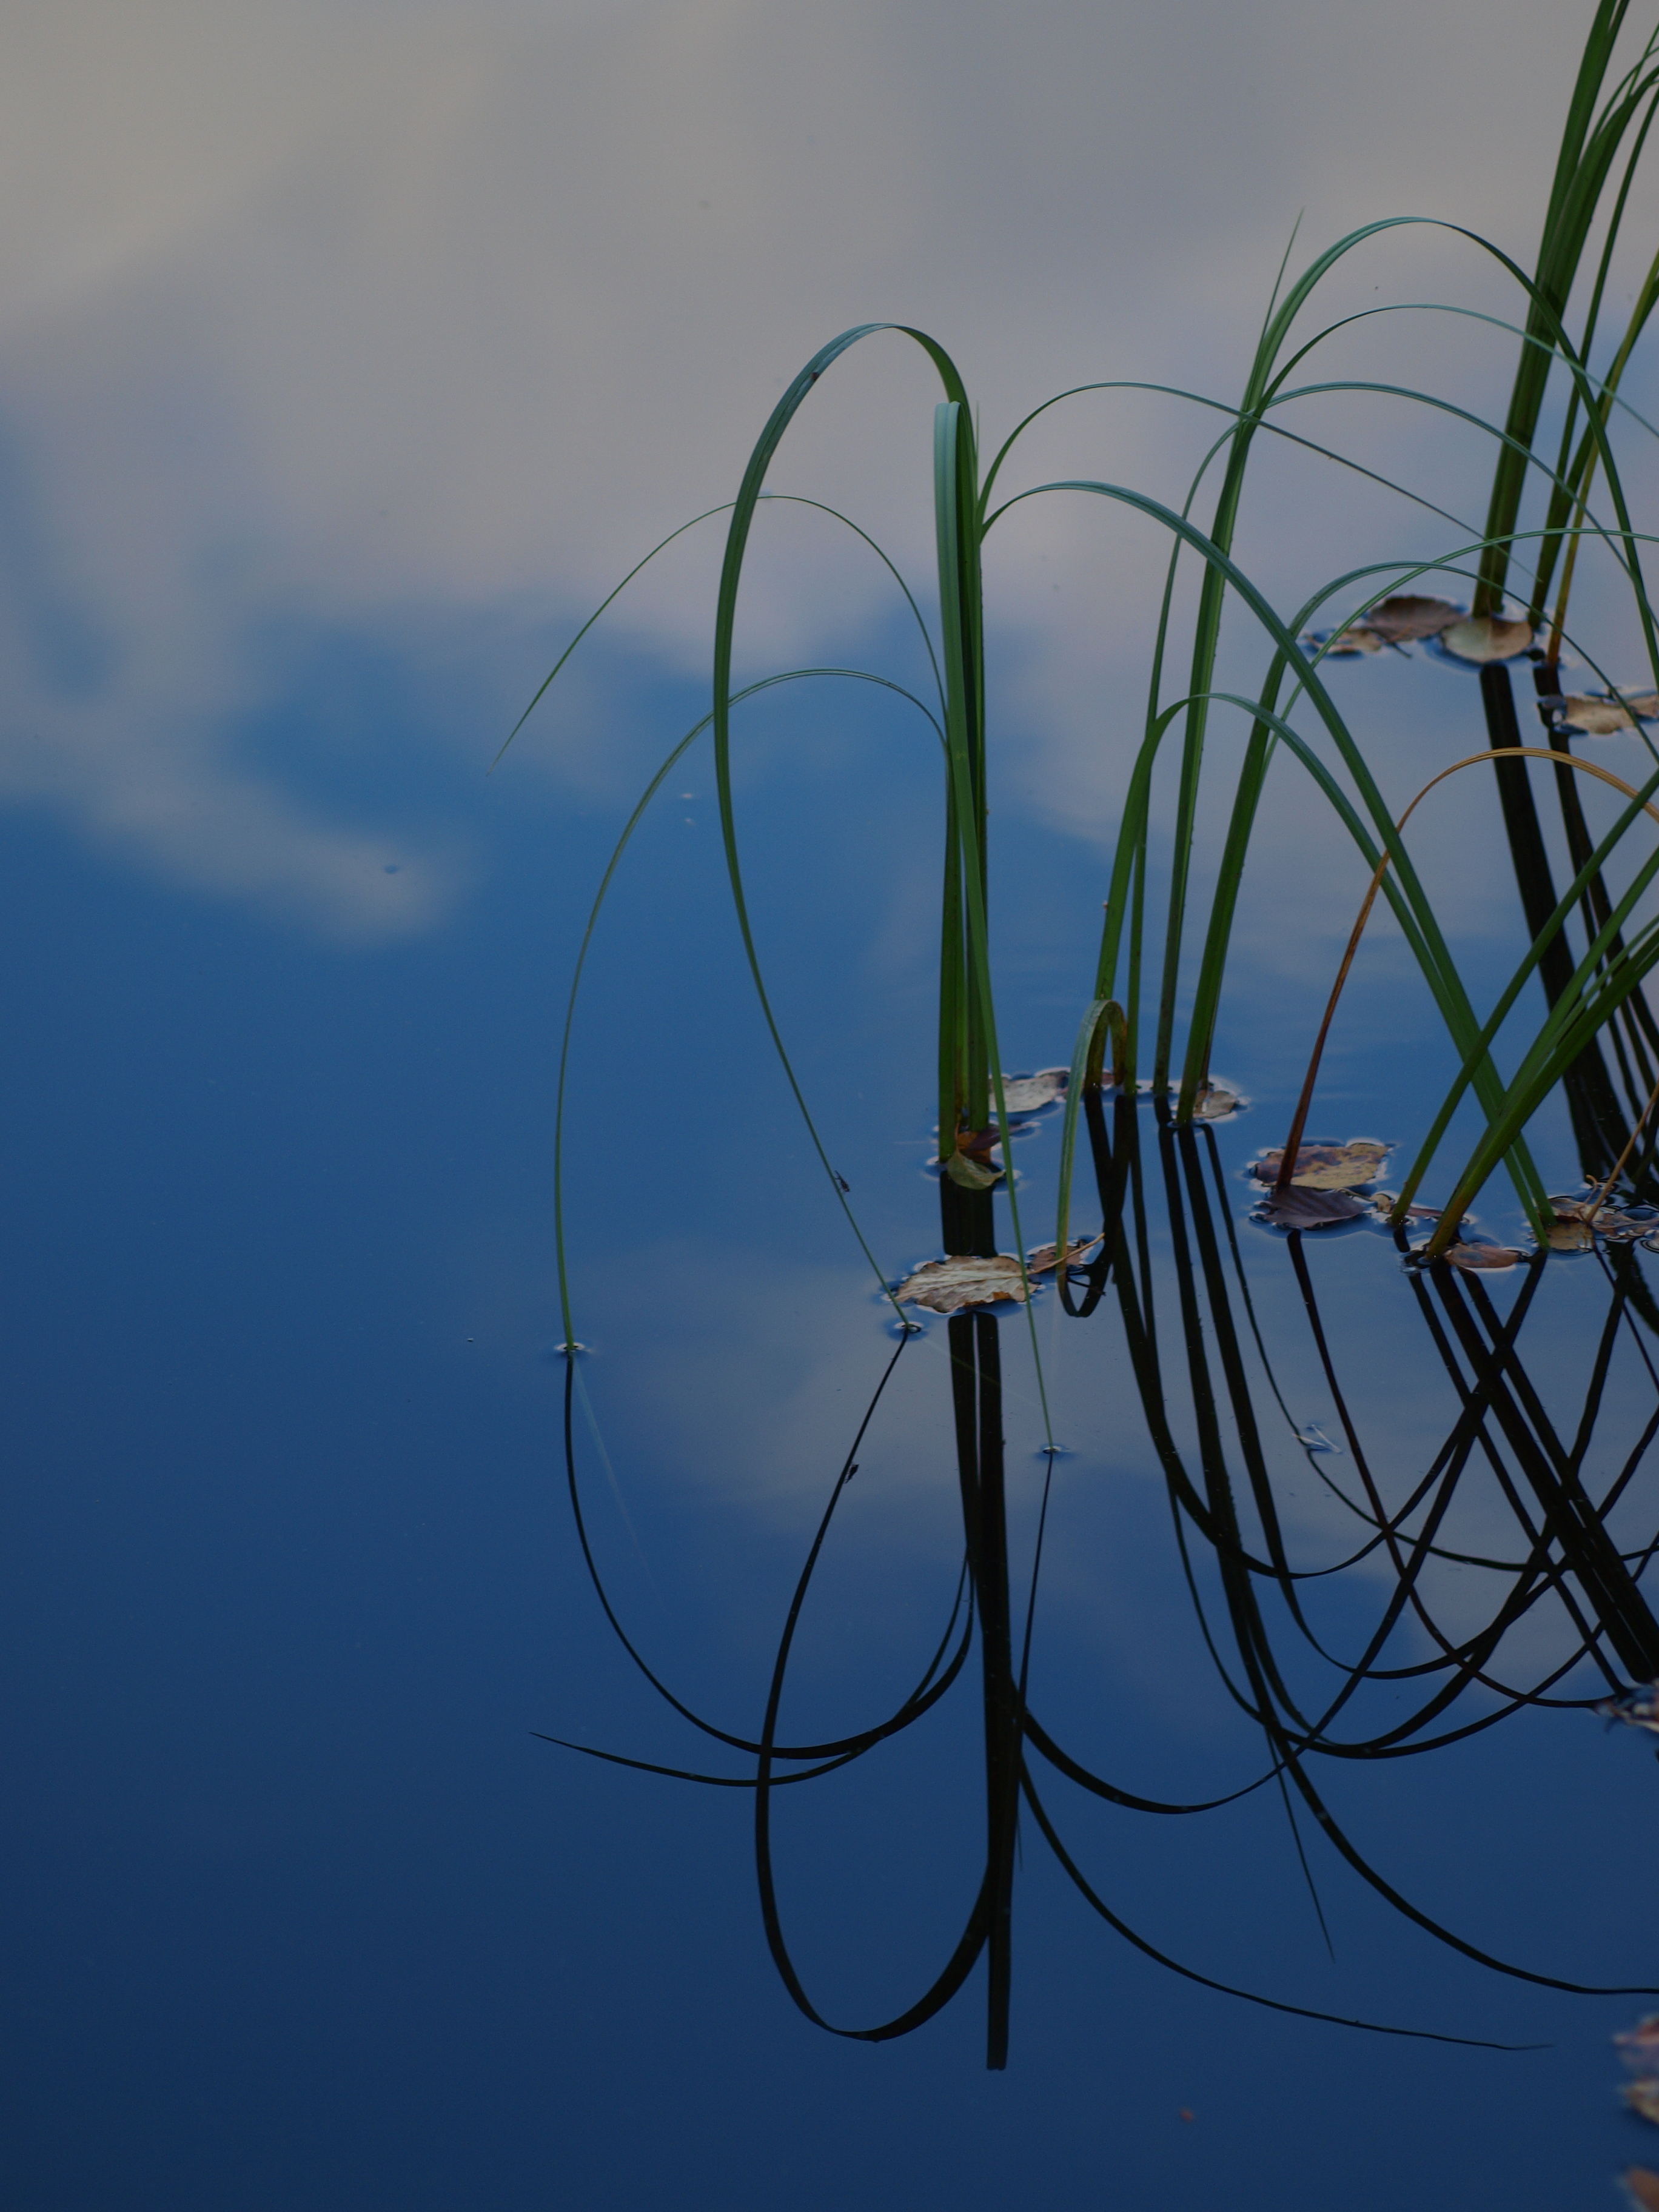 Water and plants, Water, Wet, Summer, Reflection, HQ Photo